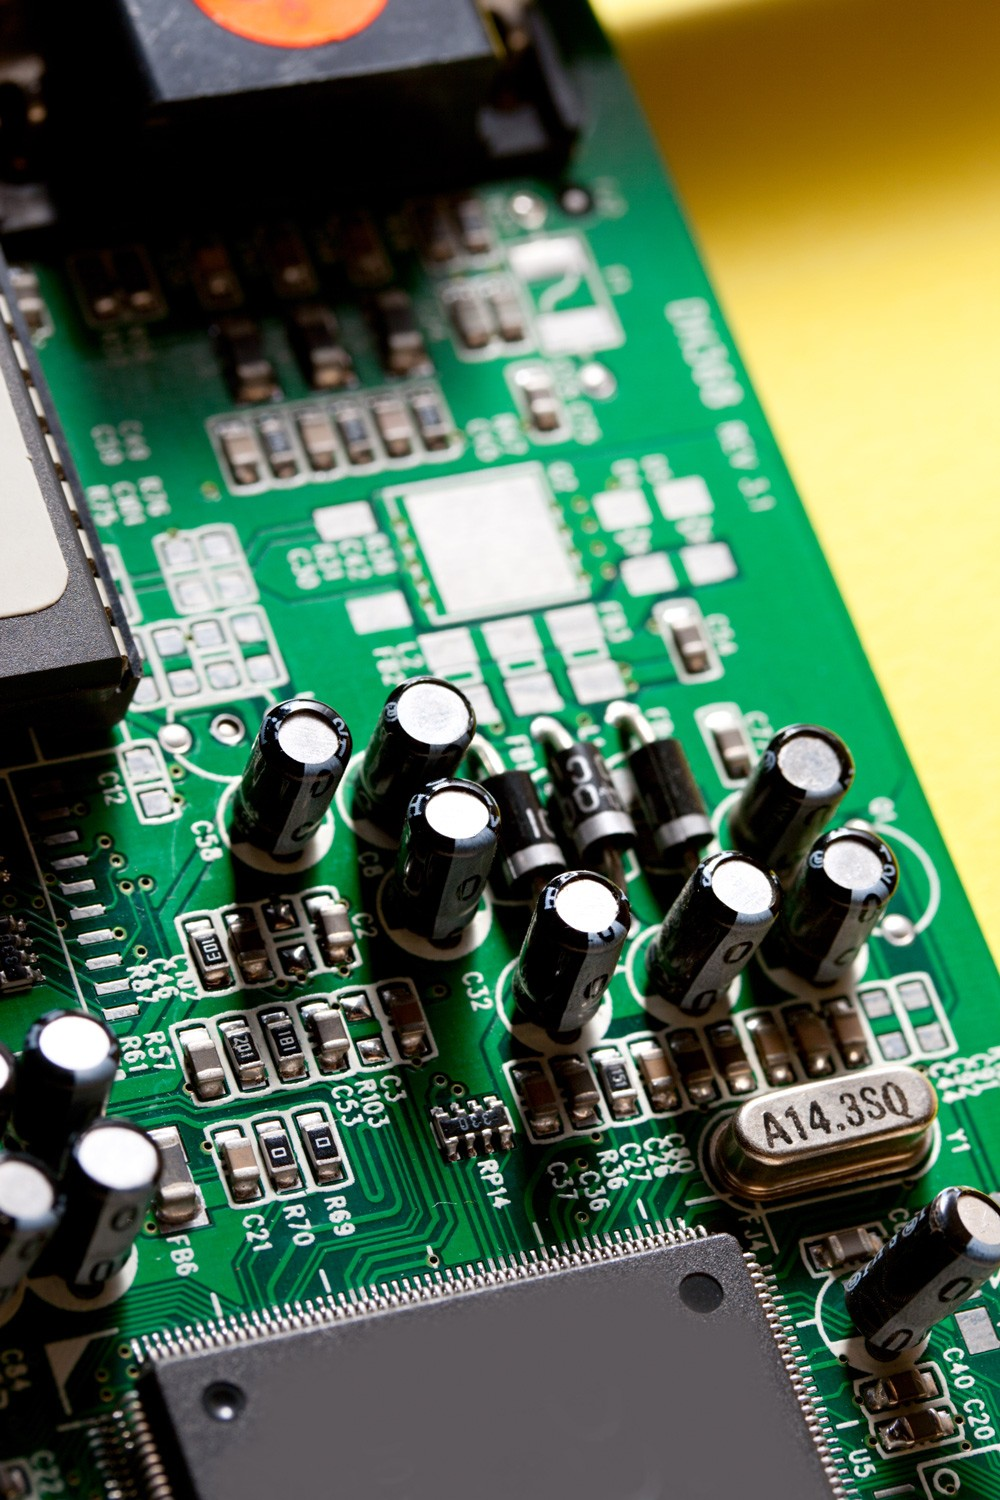 Oem Pcb Manufacturer Covers All Types Of Fabrication And Pcba Quality Through Hole Circuit Board Smt Assembly High Frequency Just Send Us Your Design Files Requirements Well Get Back To You With Fully Assembled Boards Save From Communicating